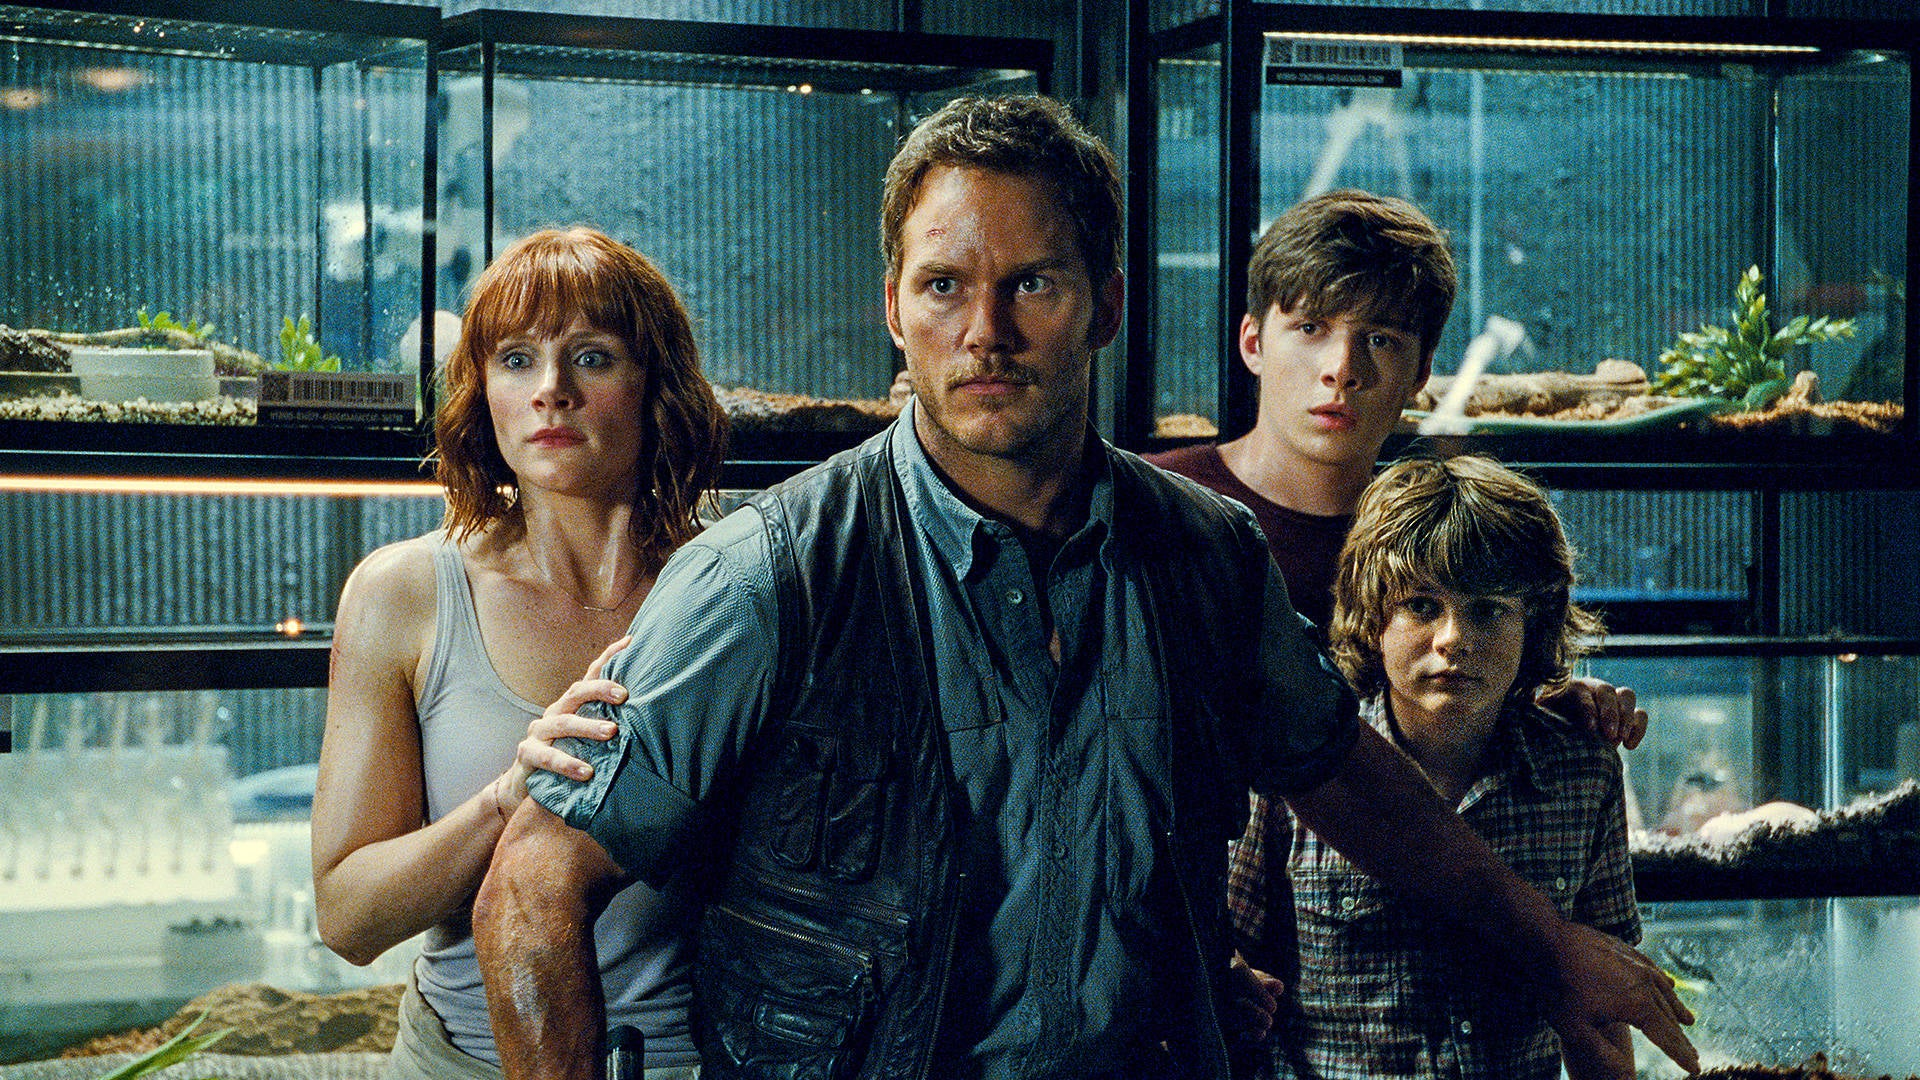 'Jurassic World' Director Colin Trevorrow Explains Why The Sequel Will Be Scarier Than Predecessor